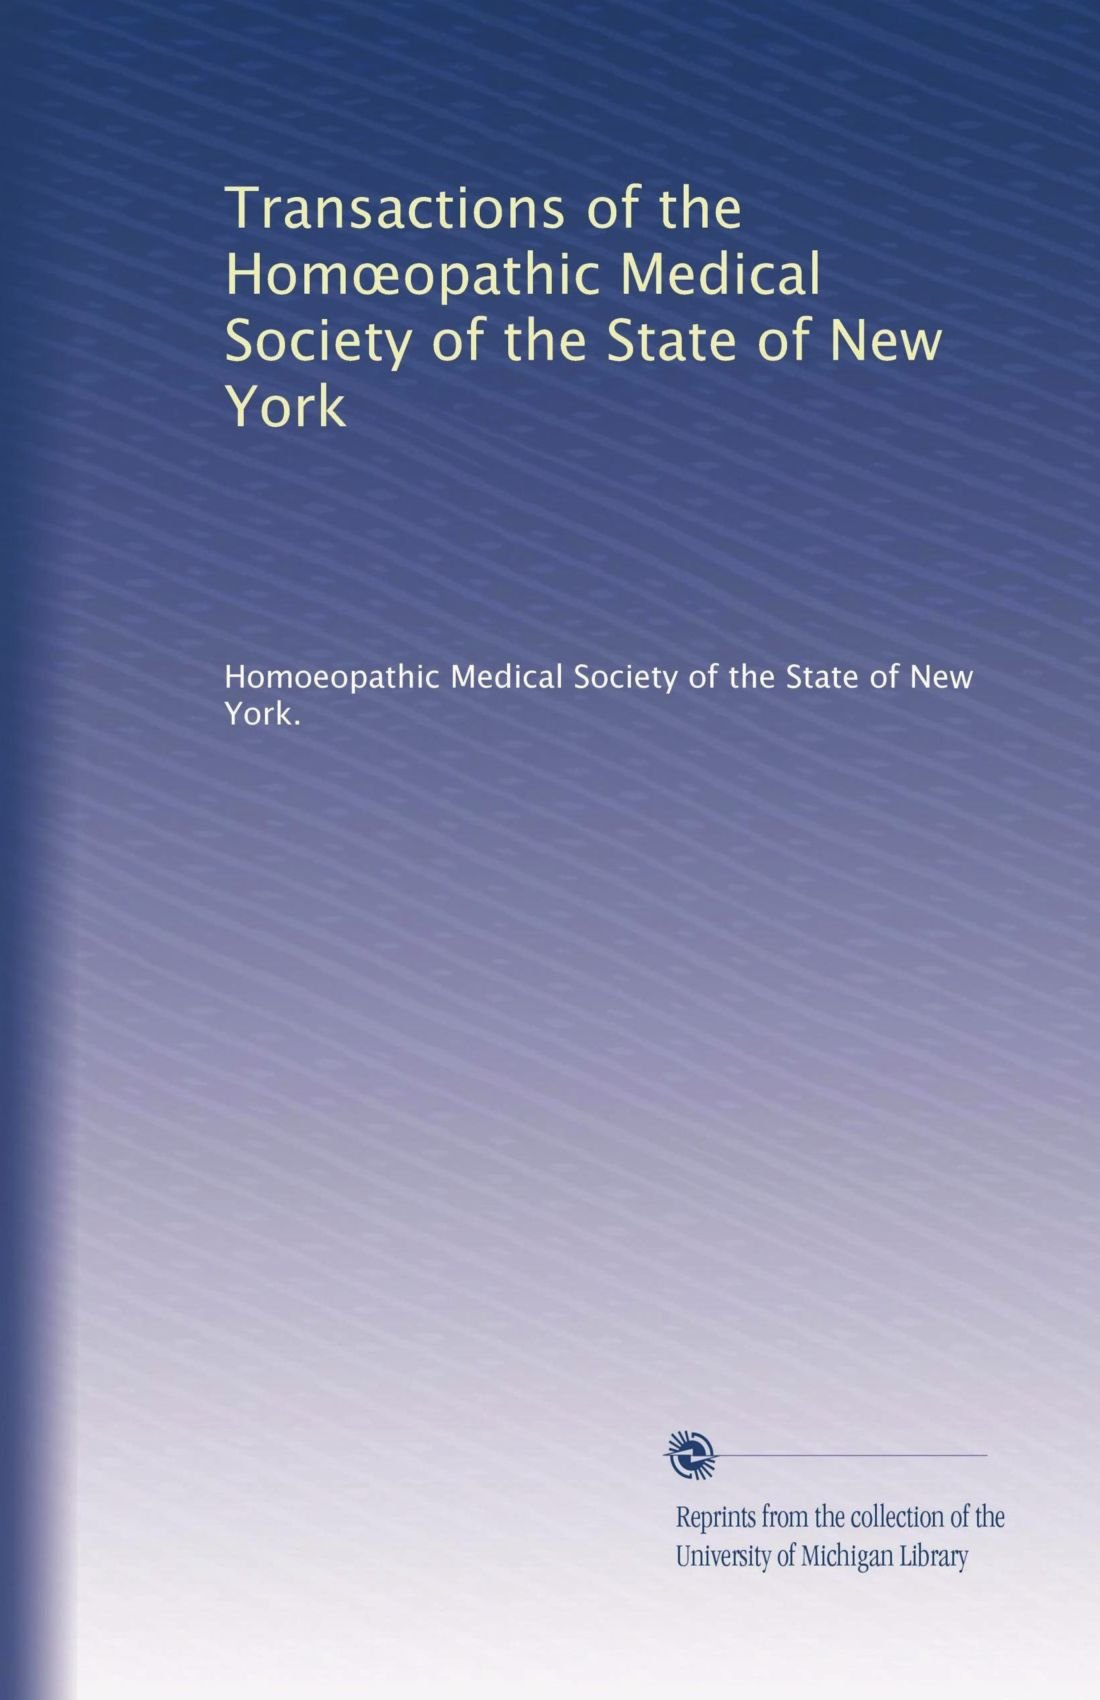 Download Transactions of the Hom?opathic Medical Society of the State of New York (Volume 20) PDF